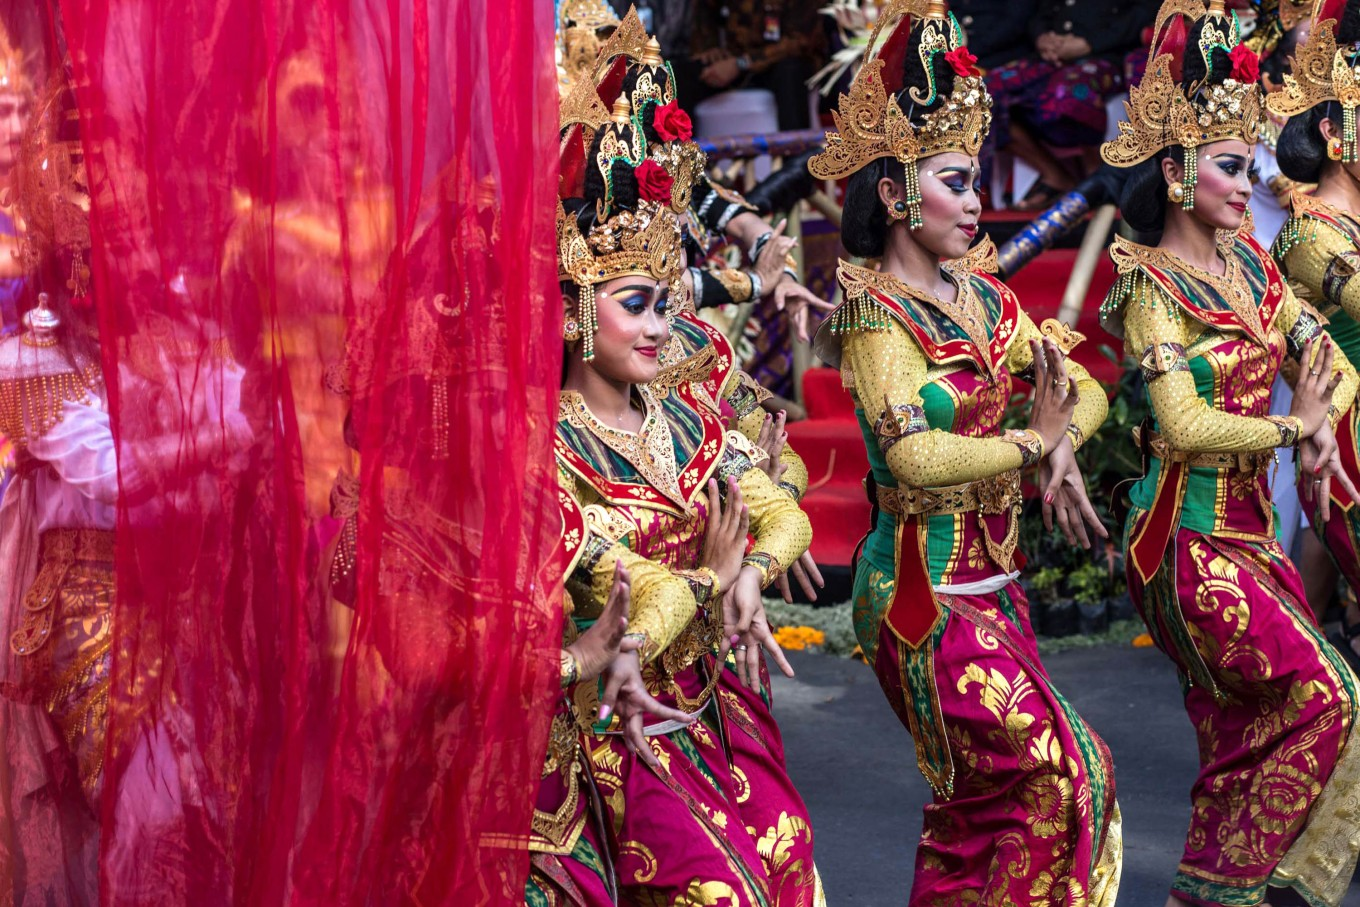 Balinese women perform a traditional dance during the street parade.  JP/Agung Parameswara